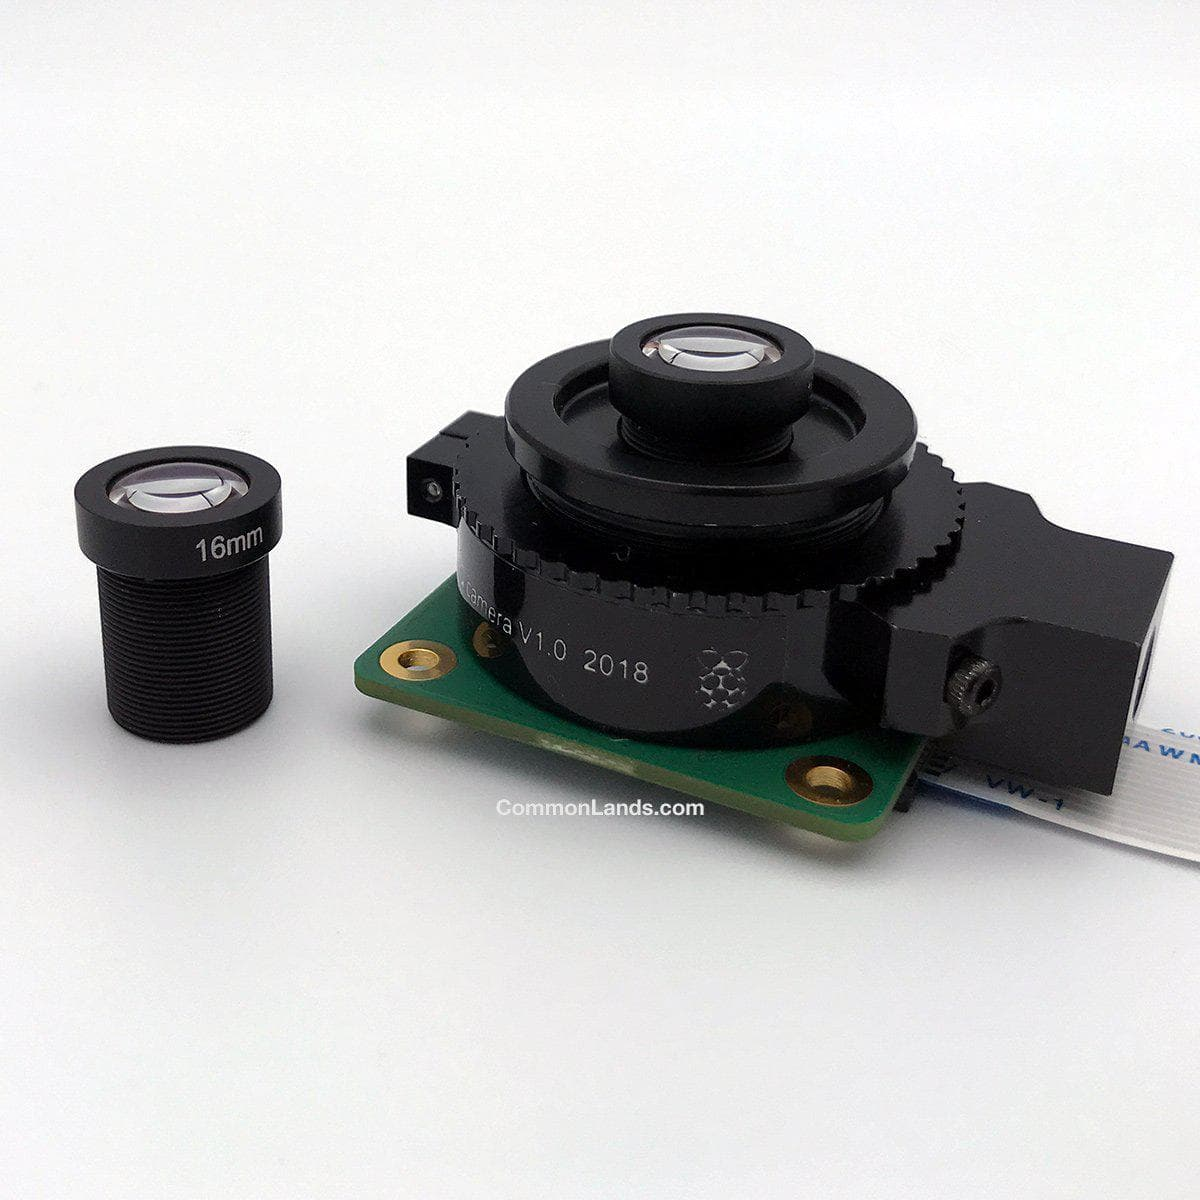 A 16mm M12 lens with the Raspberry Pi High Quality Camera.